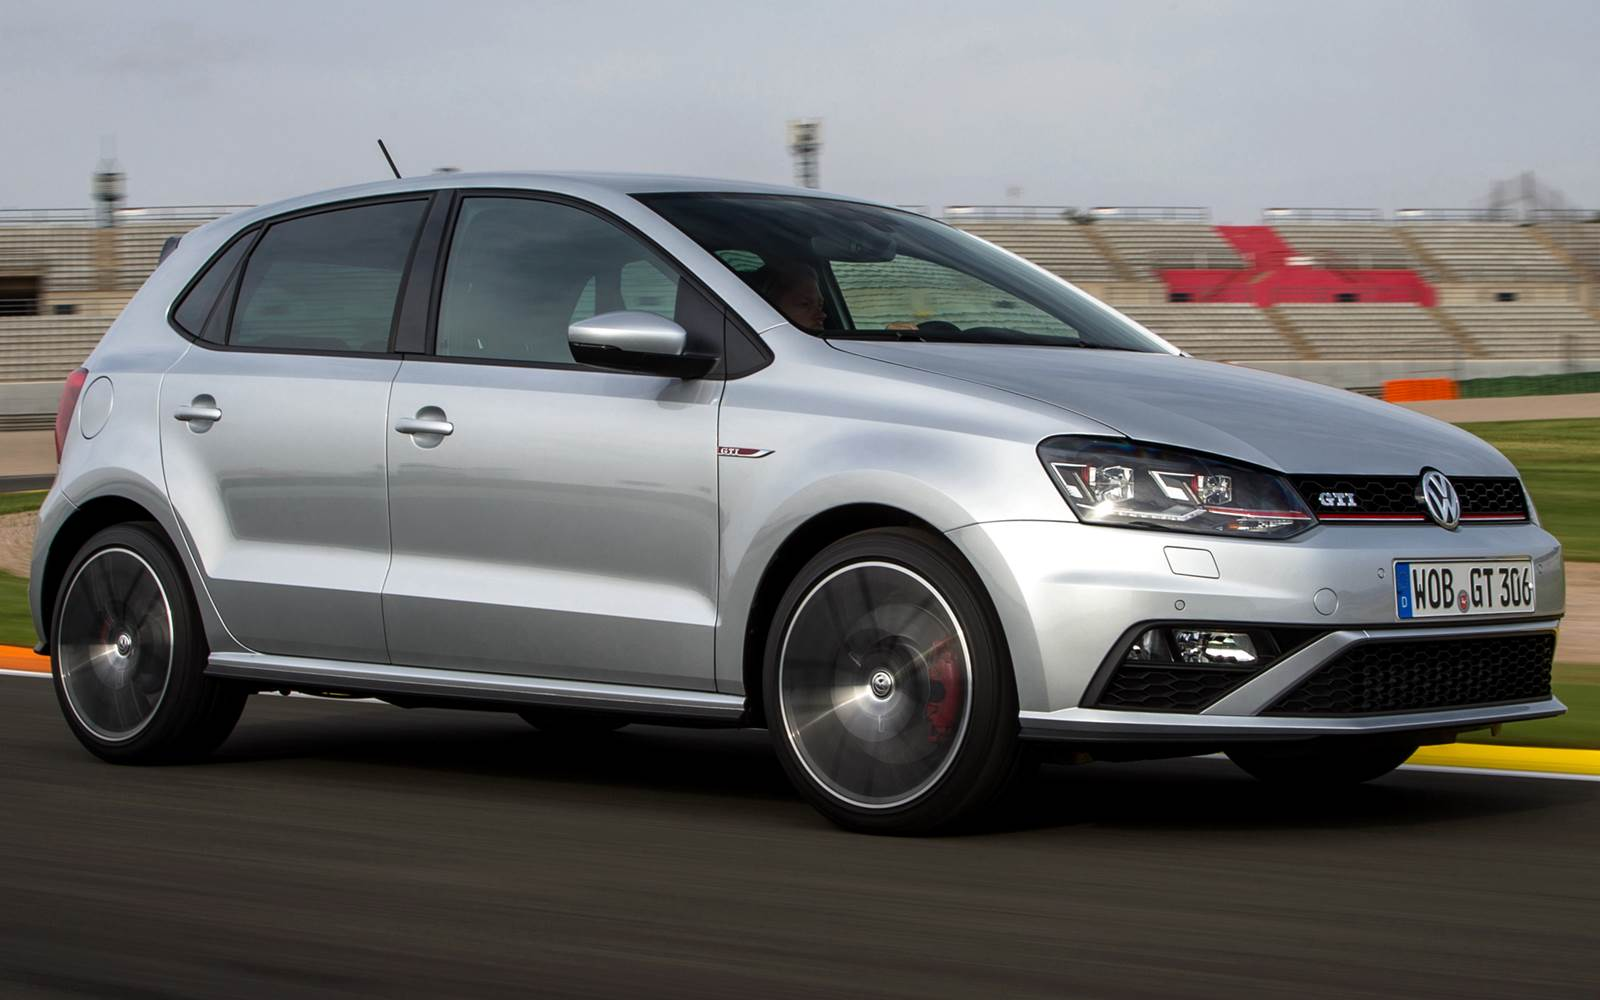 Volkswagen Polo 2016 - compacto mais vendido do mundo